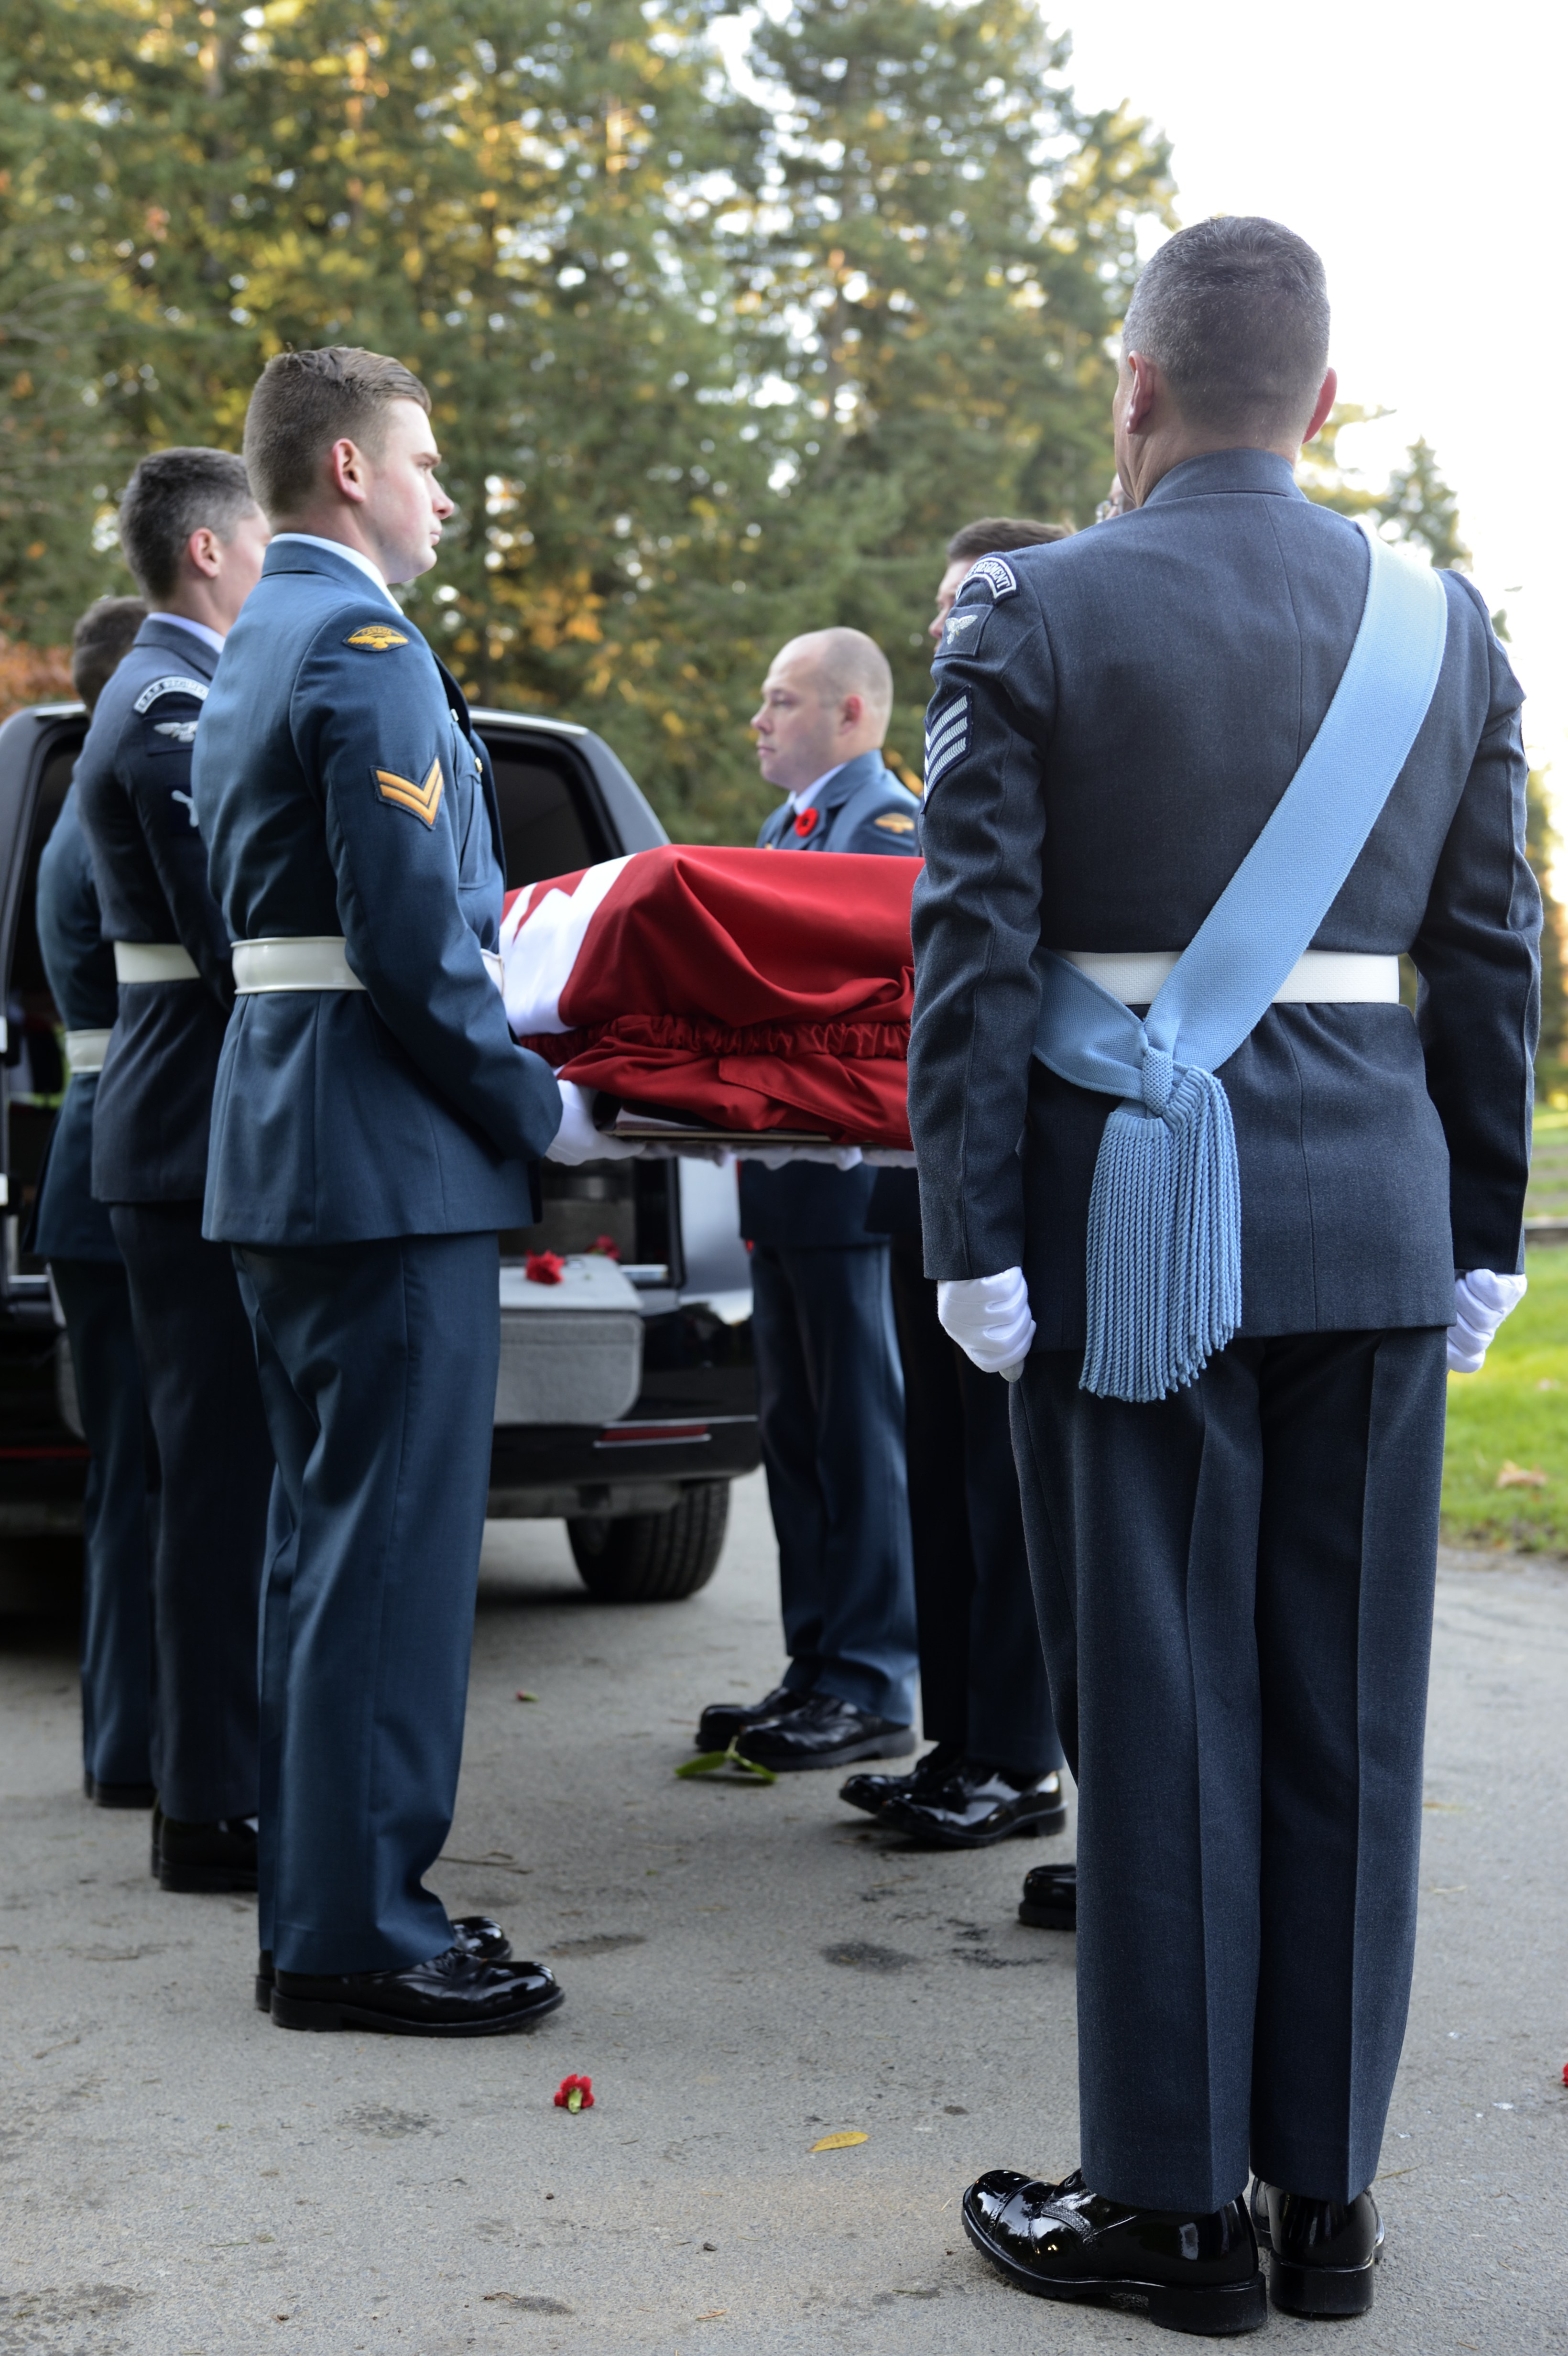 During a November 10, 2014, interment service at Royal Oak Burial Park in Victoria, British Columbia, Royal Canadian Air Force (RCAF) pallbearers accept the casket containing the remains of Avro Anson flight L7056 crewmen Pilot Officer Charles George Fox, Pilot Officer Anthony William Lawrence and Sergeant Robert Ernest Luckock, of the Royal Air Force (RAF), and RCAF Sergeant William Baird. The airmen were lost when their aircraft disappeared over Vancouver Island, British Columbia, on October 30, 1942. PHOTO: Corporal Malcolm Byers